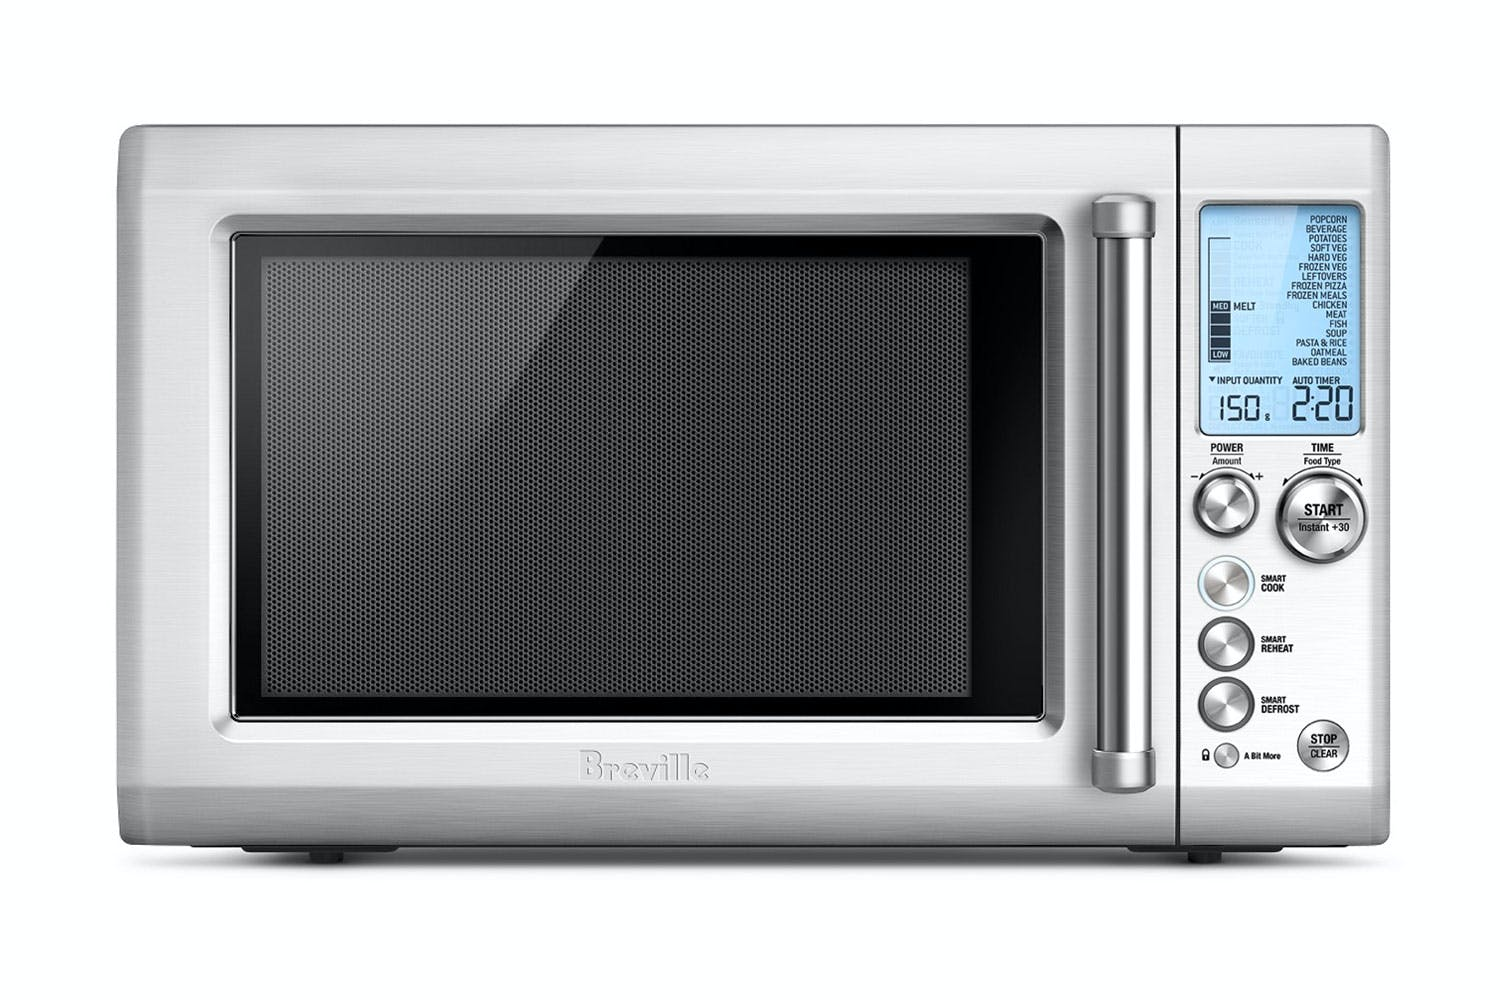 Breville Quick Touch Microwave Oven Stainless Steel Harvey Norman New Zealand